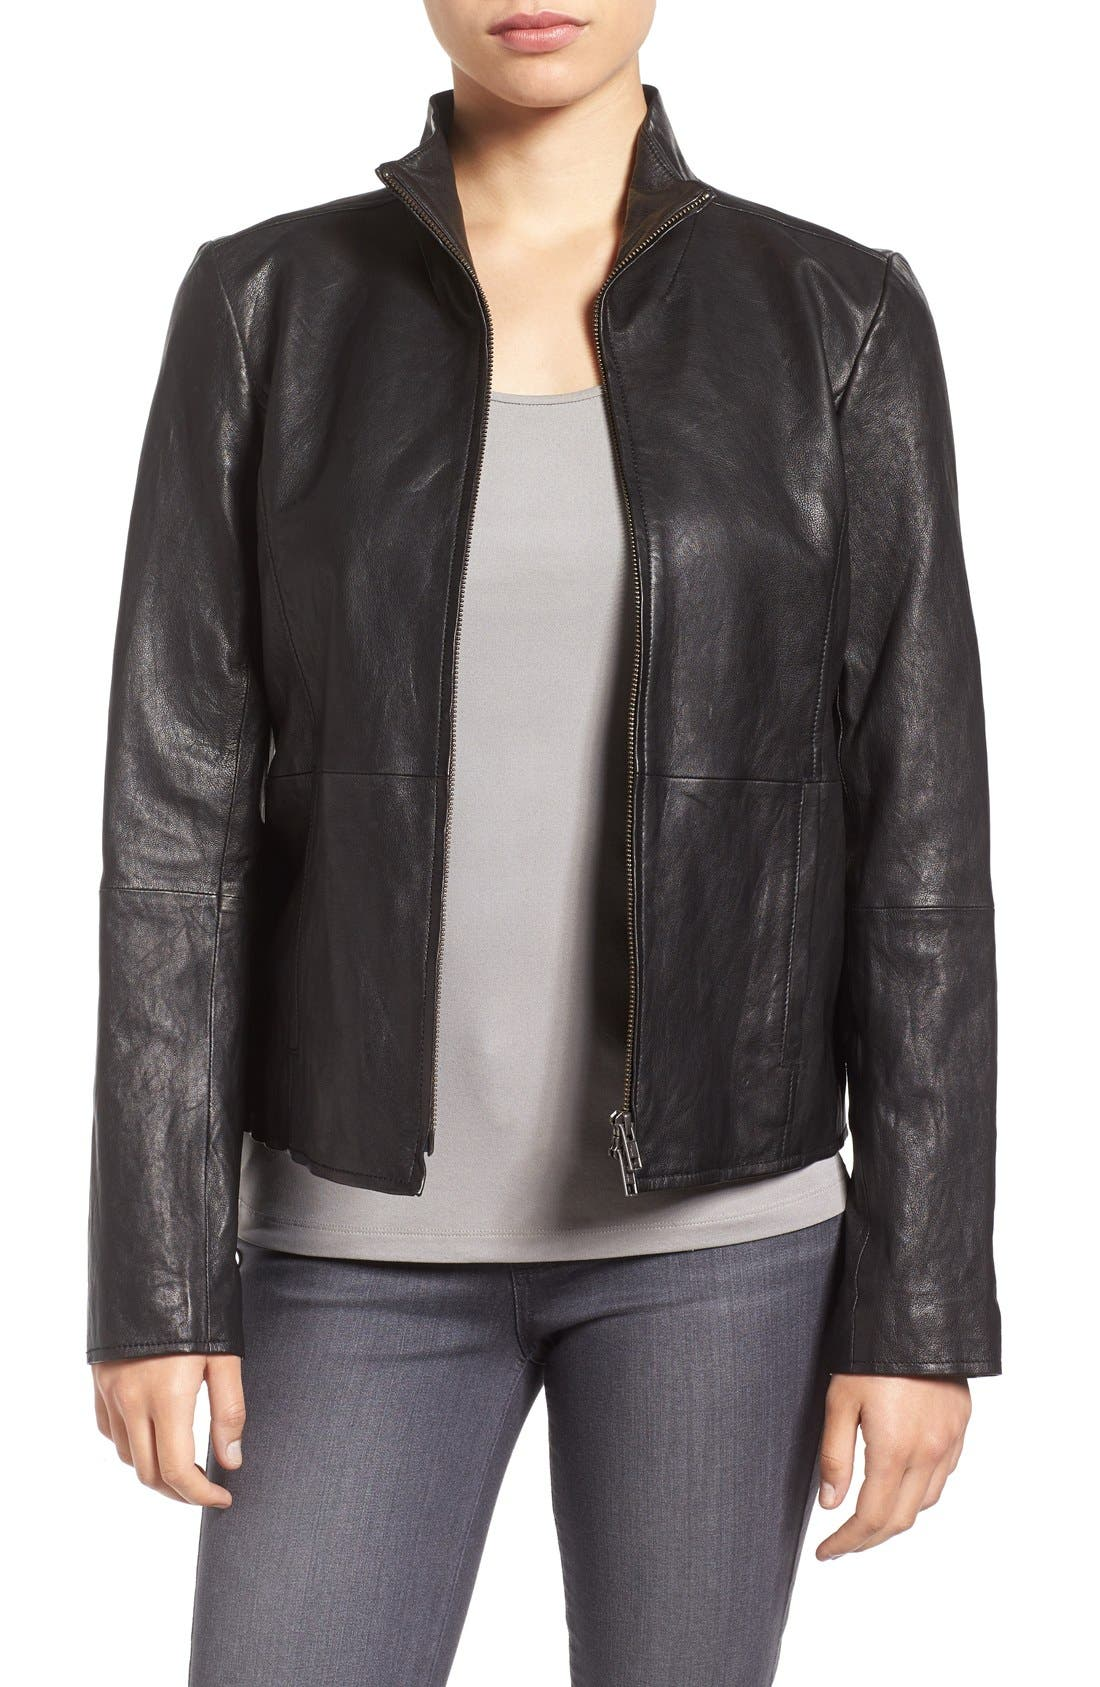 Rumpled Luxe Leather Stand Collar Jacket,                             Main thumbnail 1, color,                             001